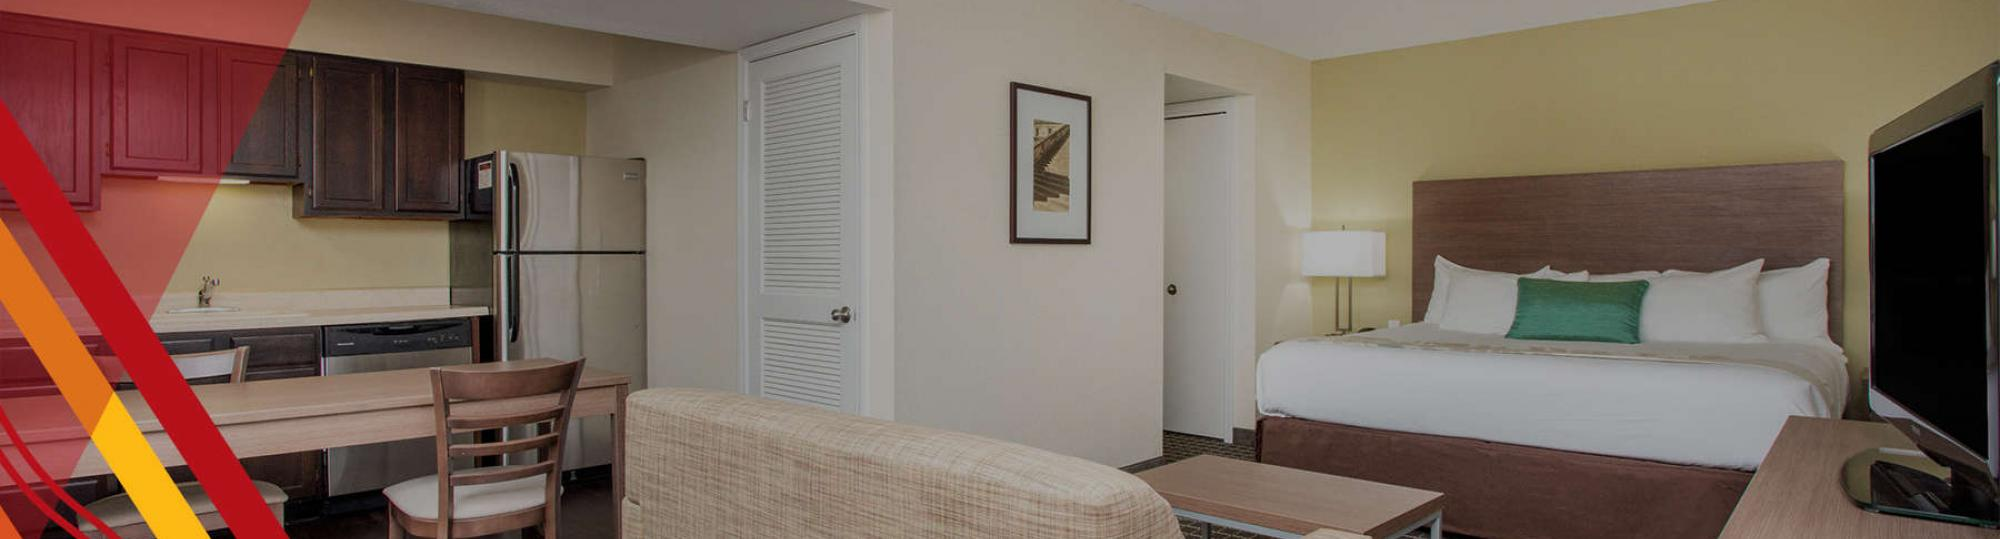 Hawthorn Suites Military Discount with Veterans Advantage